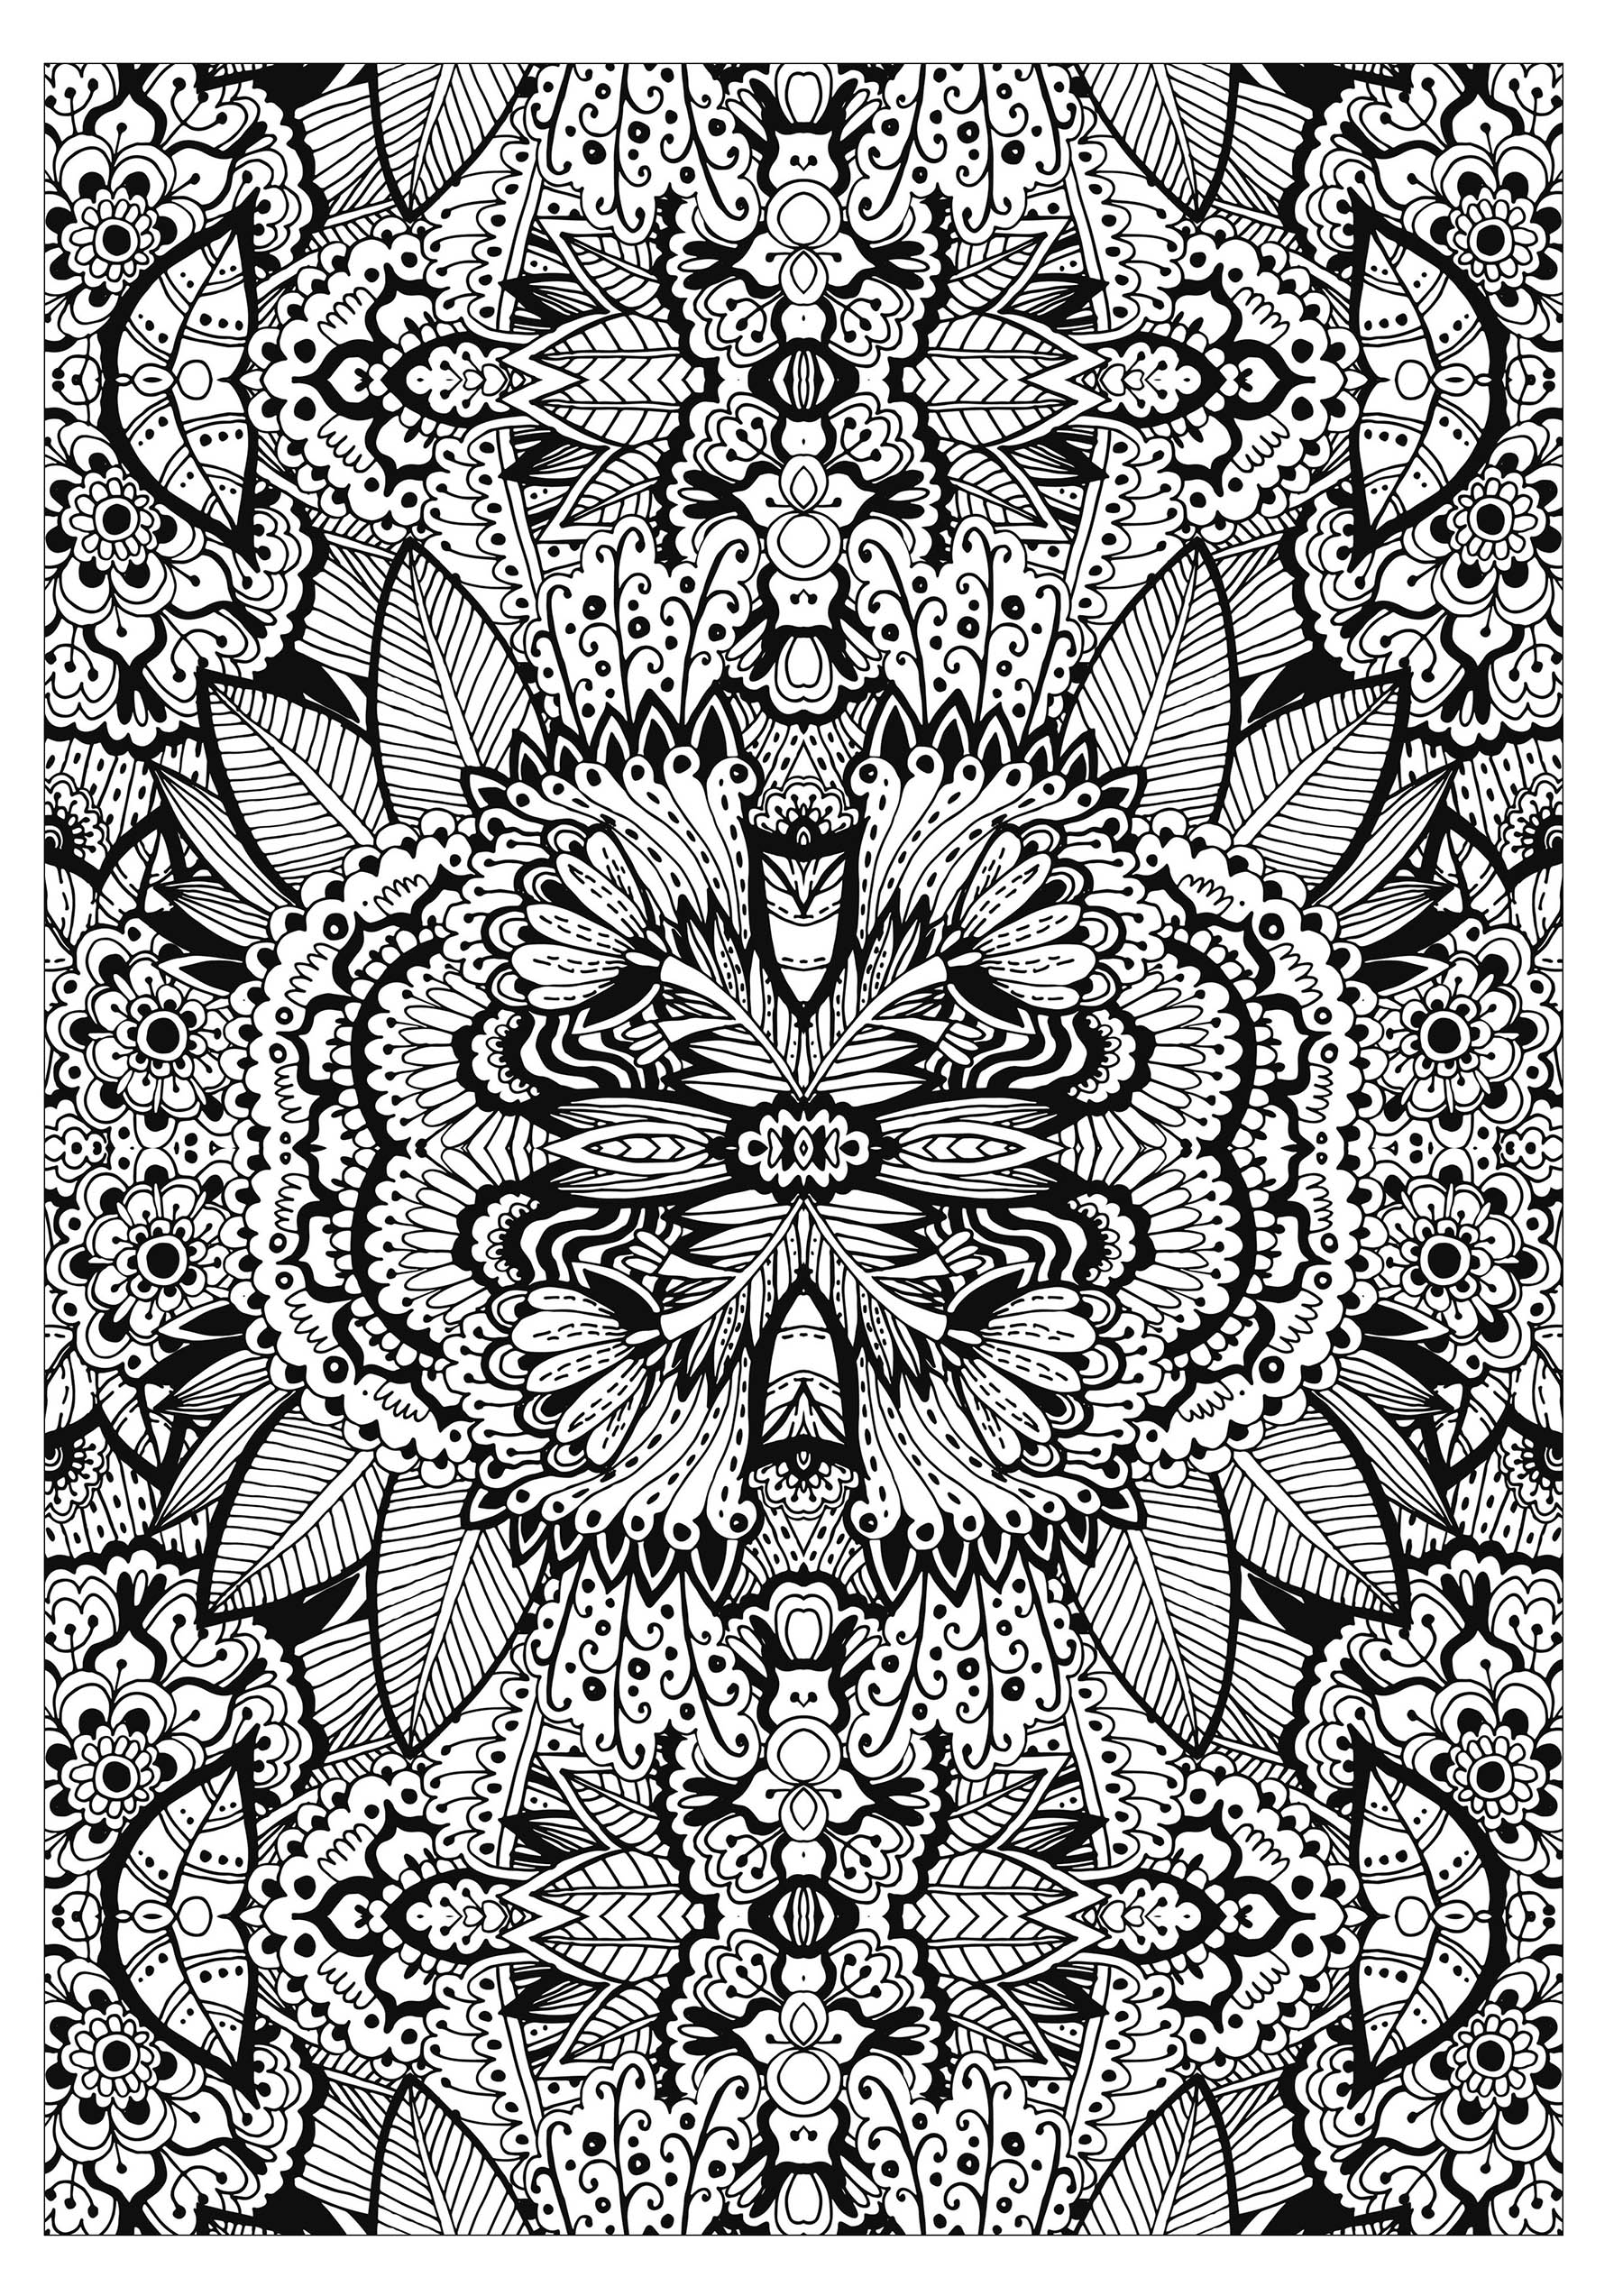 'Flower carpet' : A very very complex coloring page ! Squared version